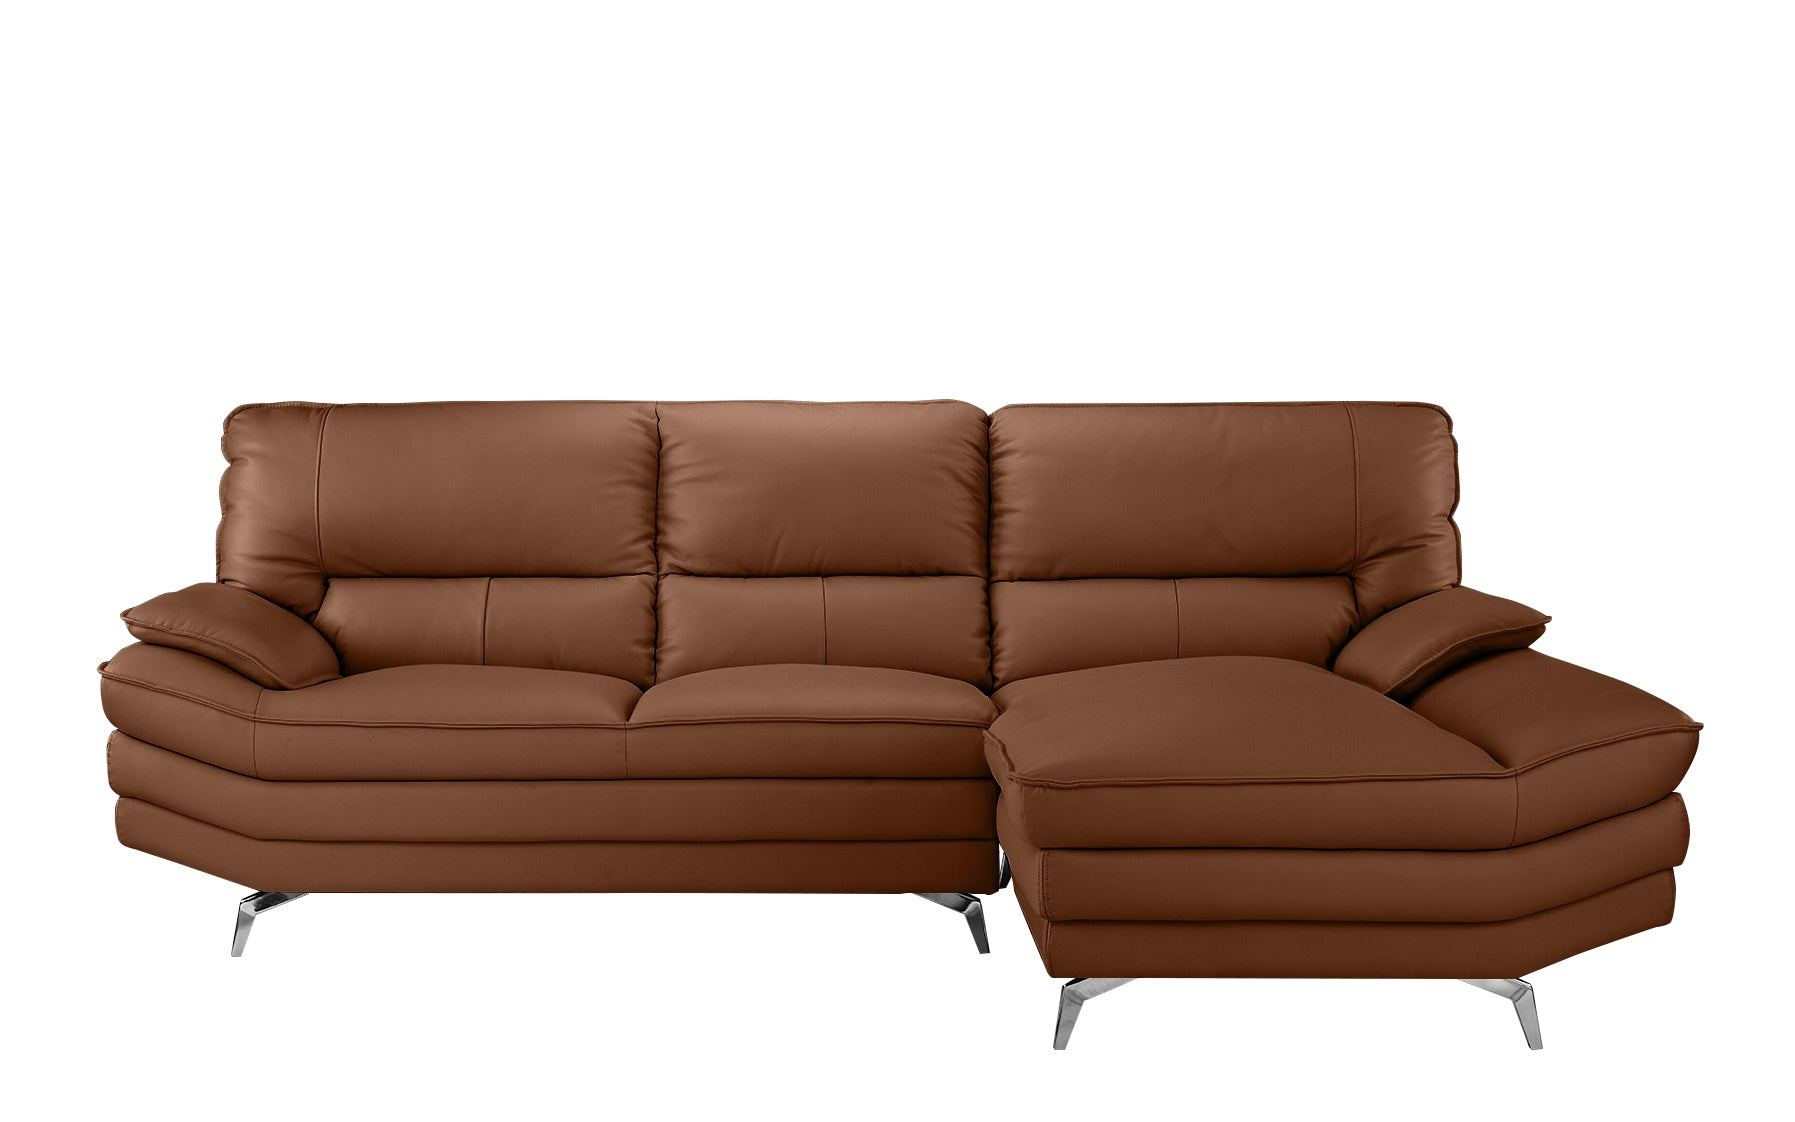 Desi New Wave Contemporary Top Grain Leather Match Sectional Sofa